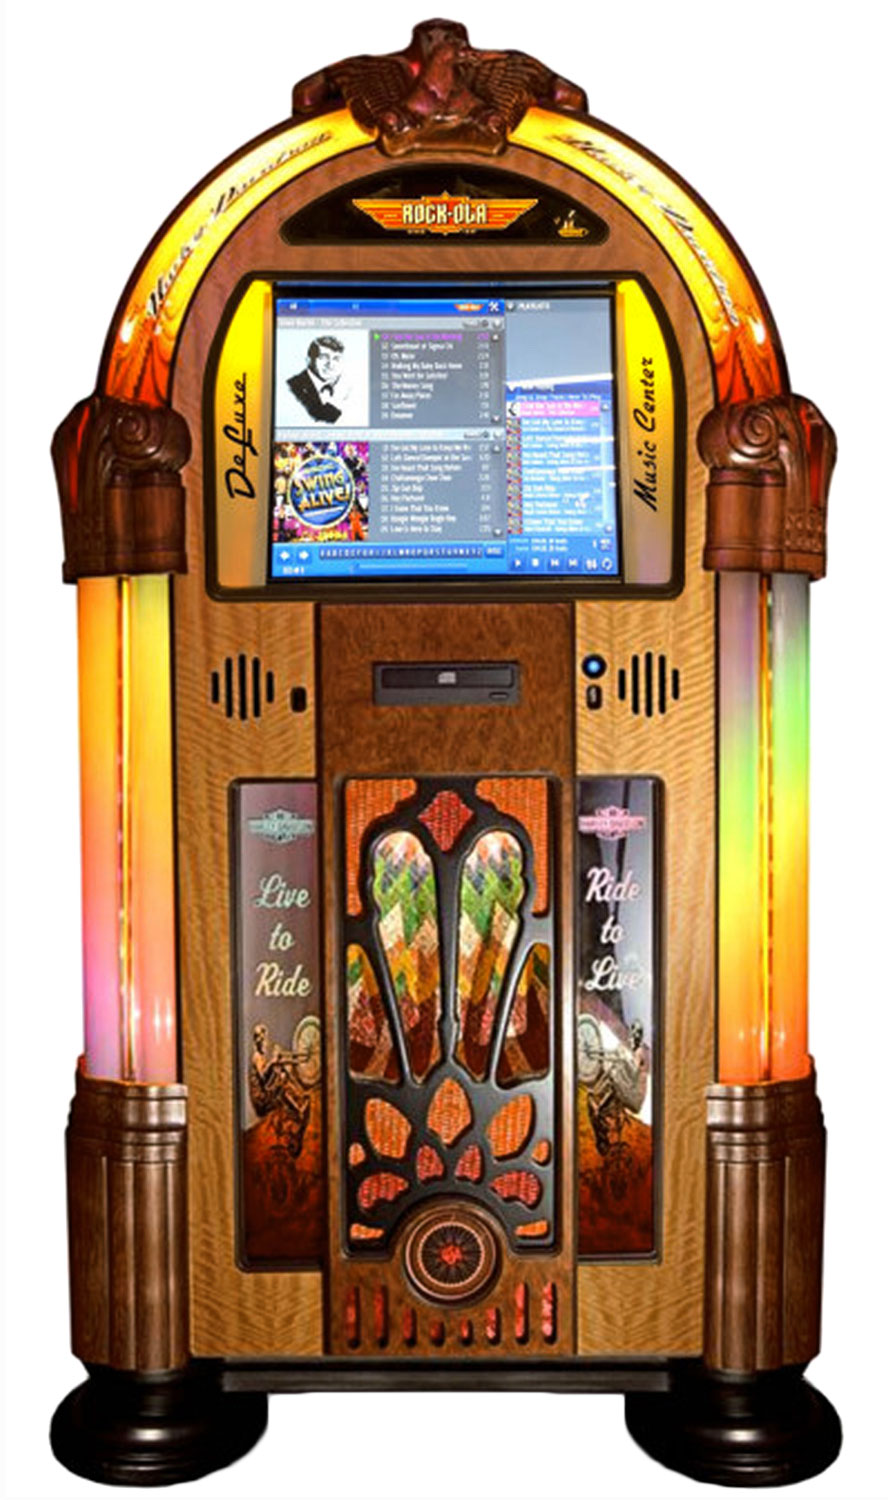 Rock Ola Harley Davidson Jukebox Digital Music Centre